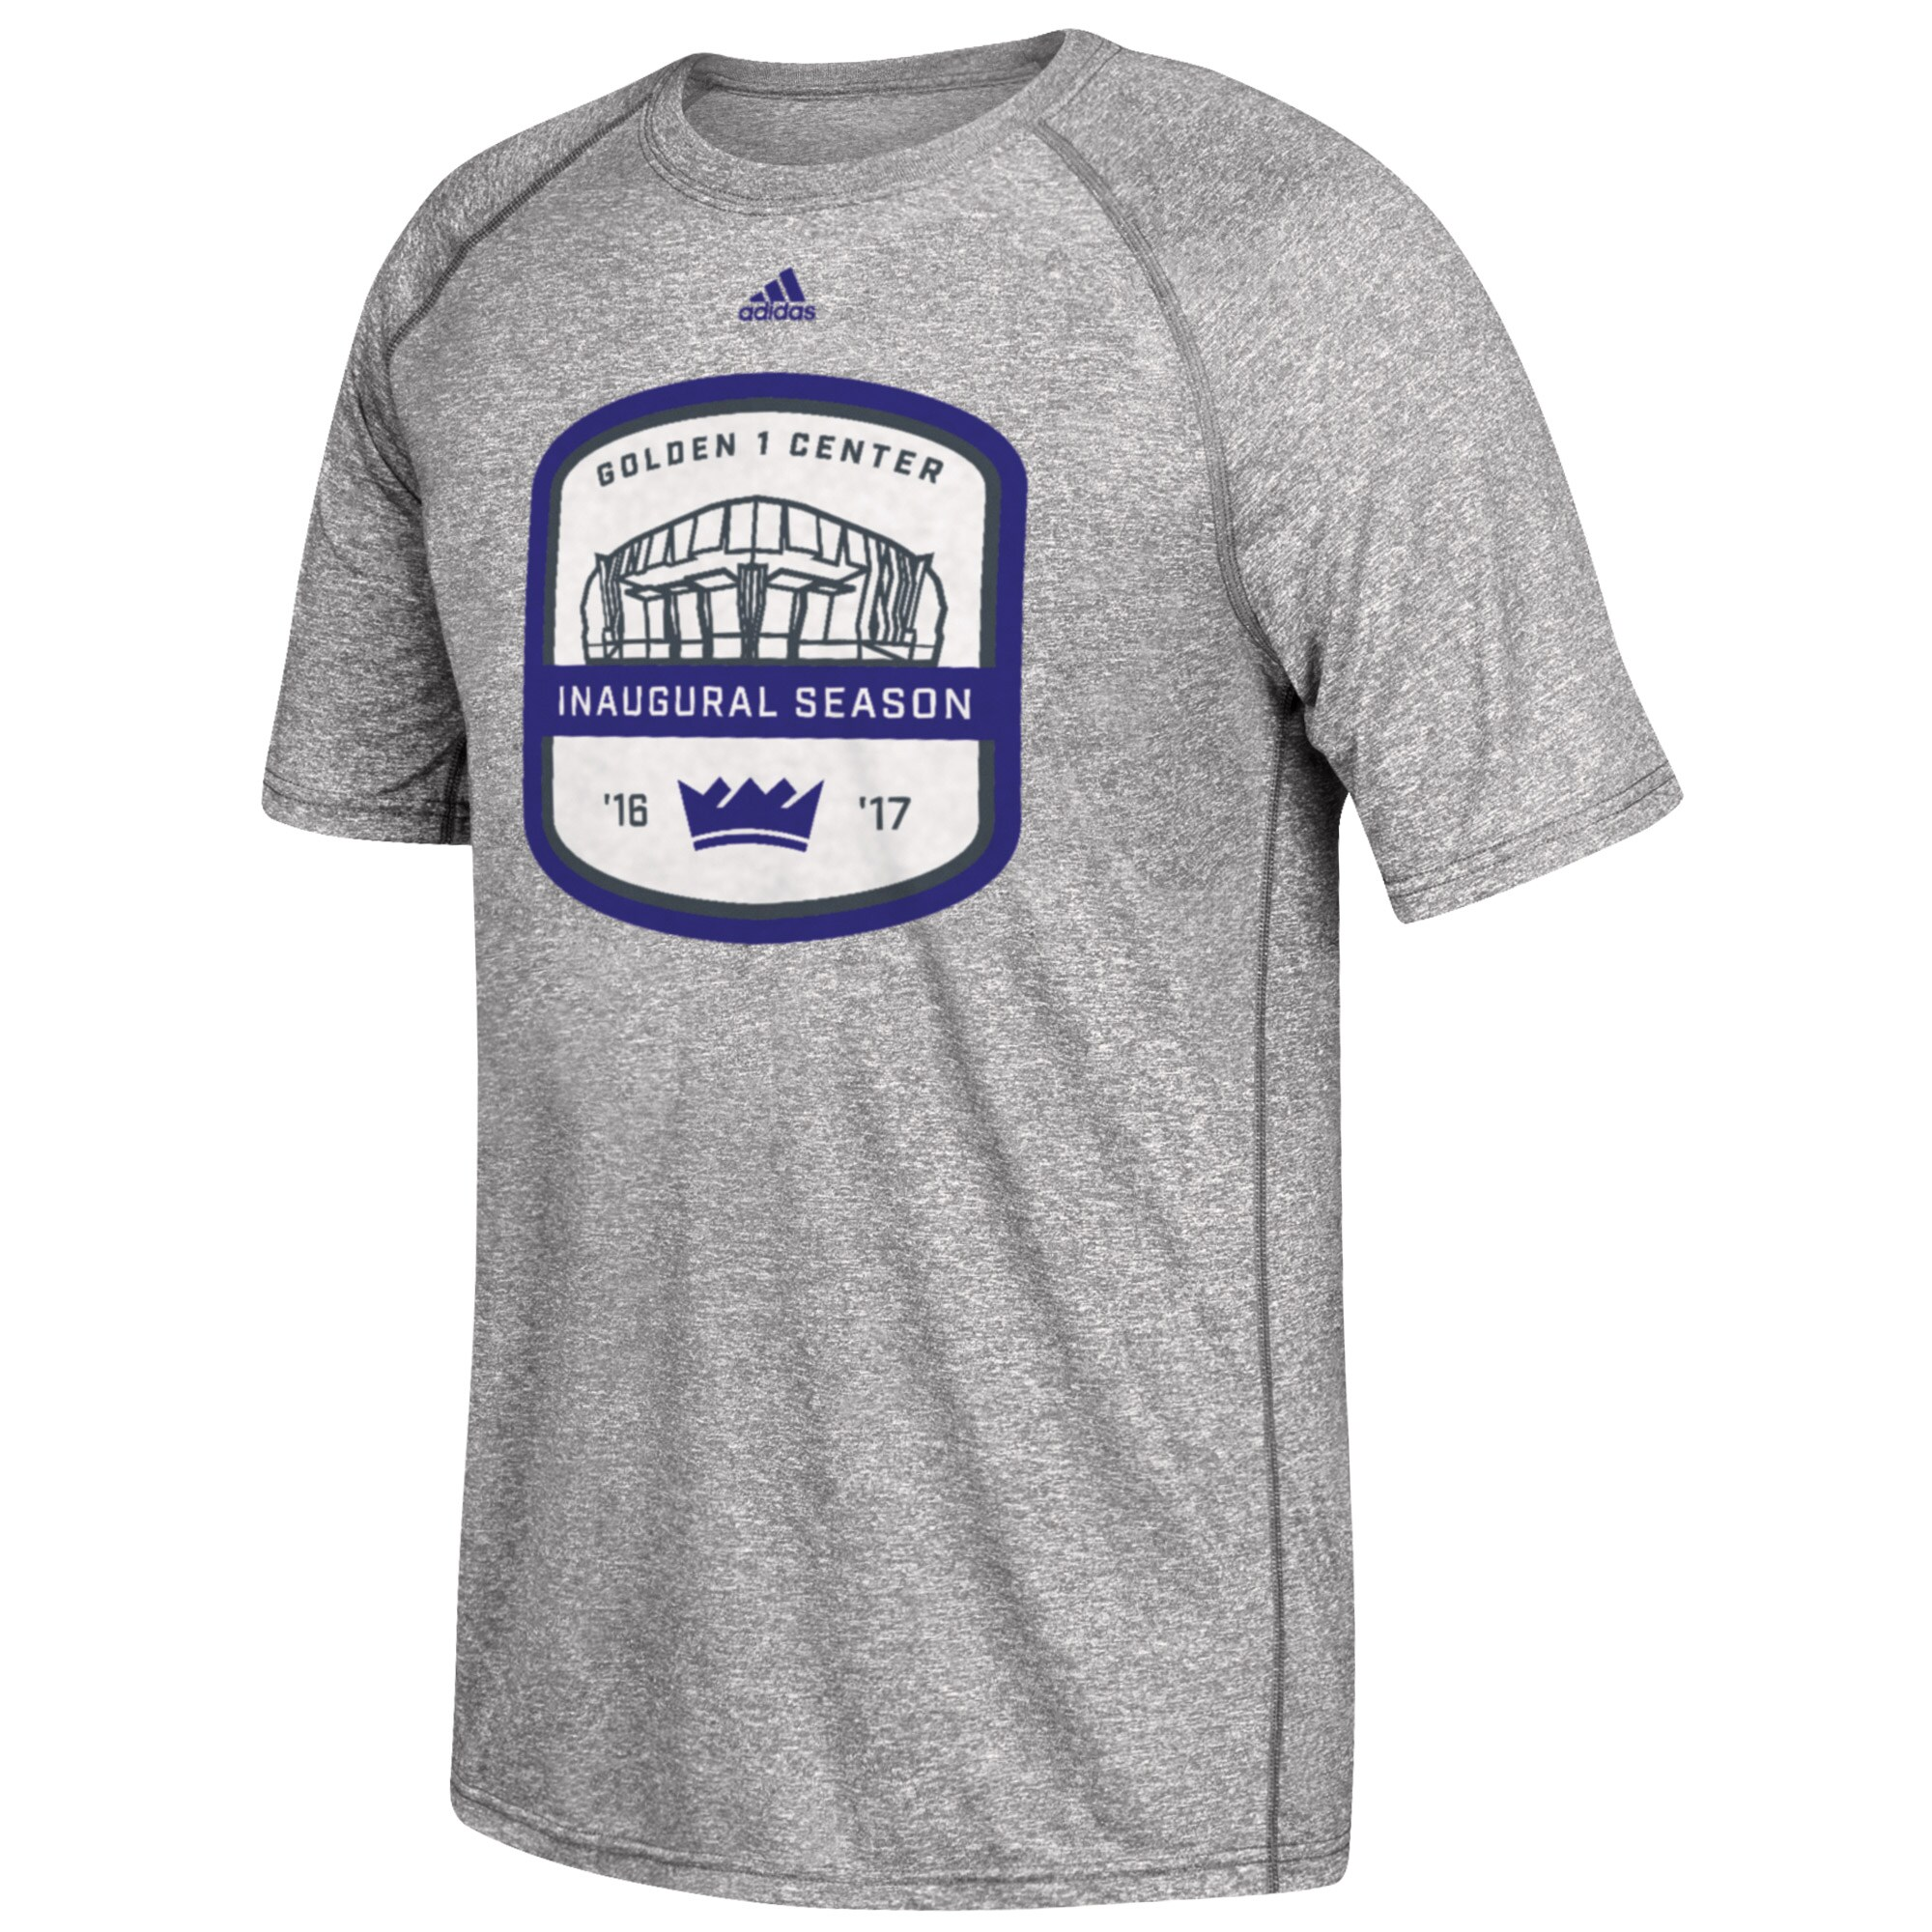 Sacramento Kings adidas 2016/17 Commemorative climalite T-Shirt - Gray